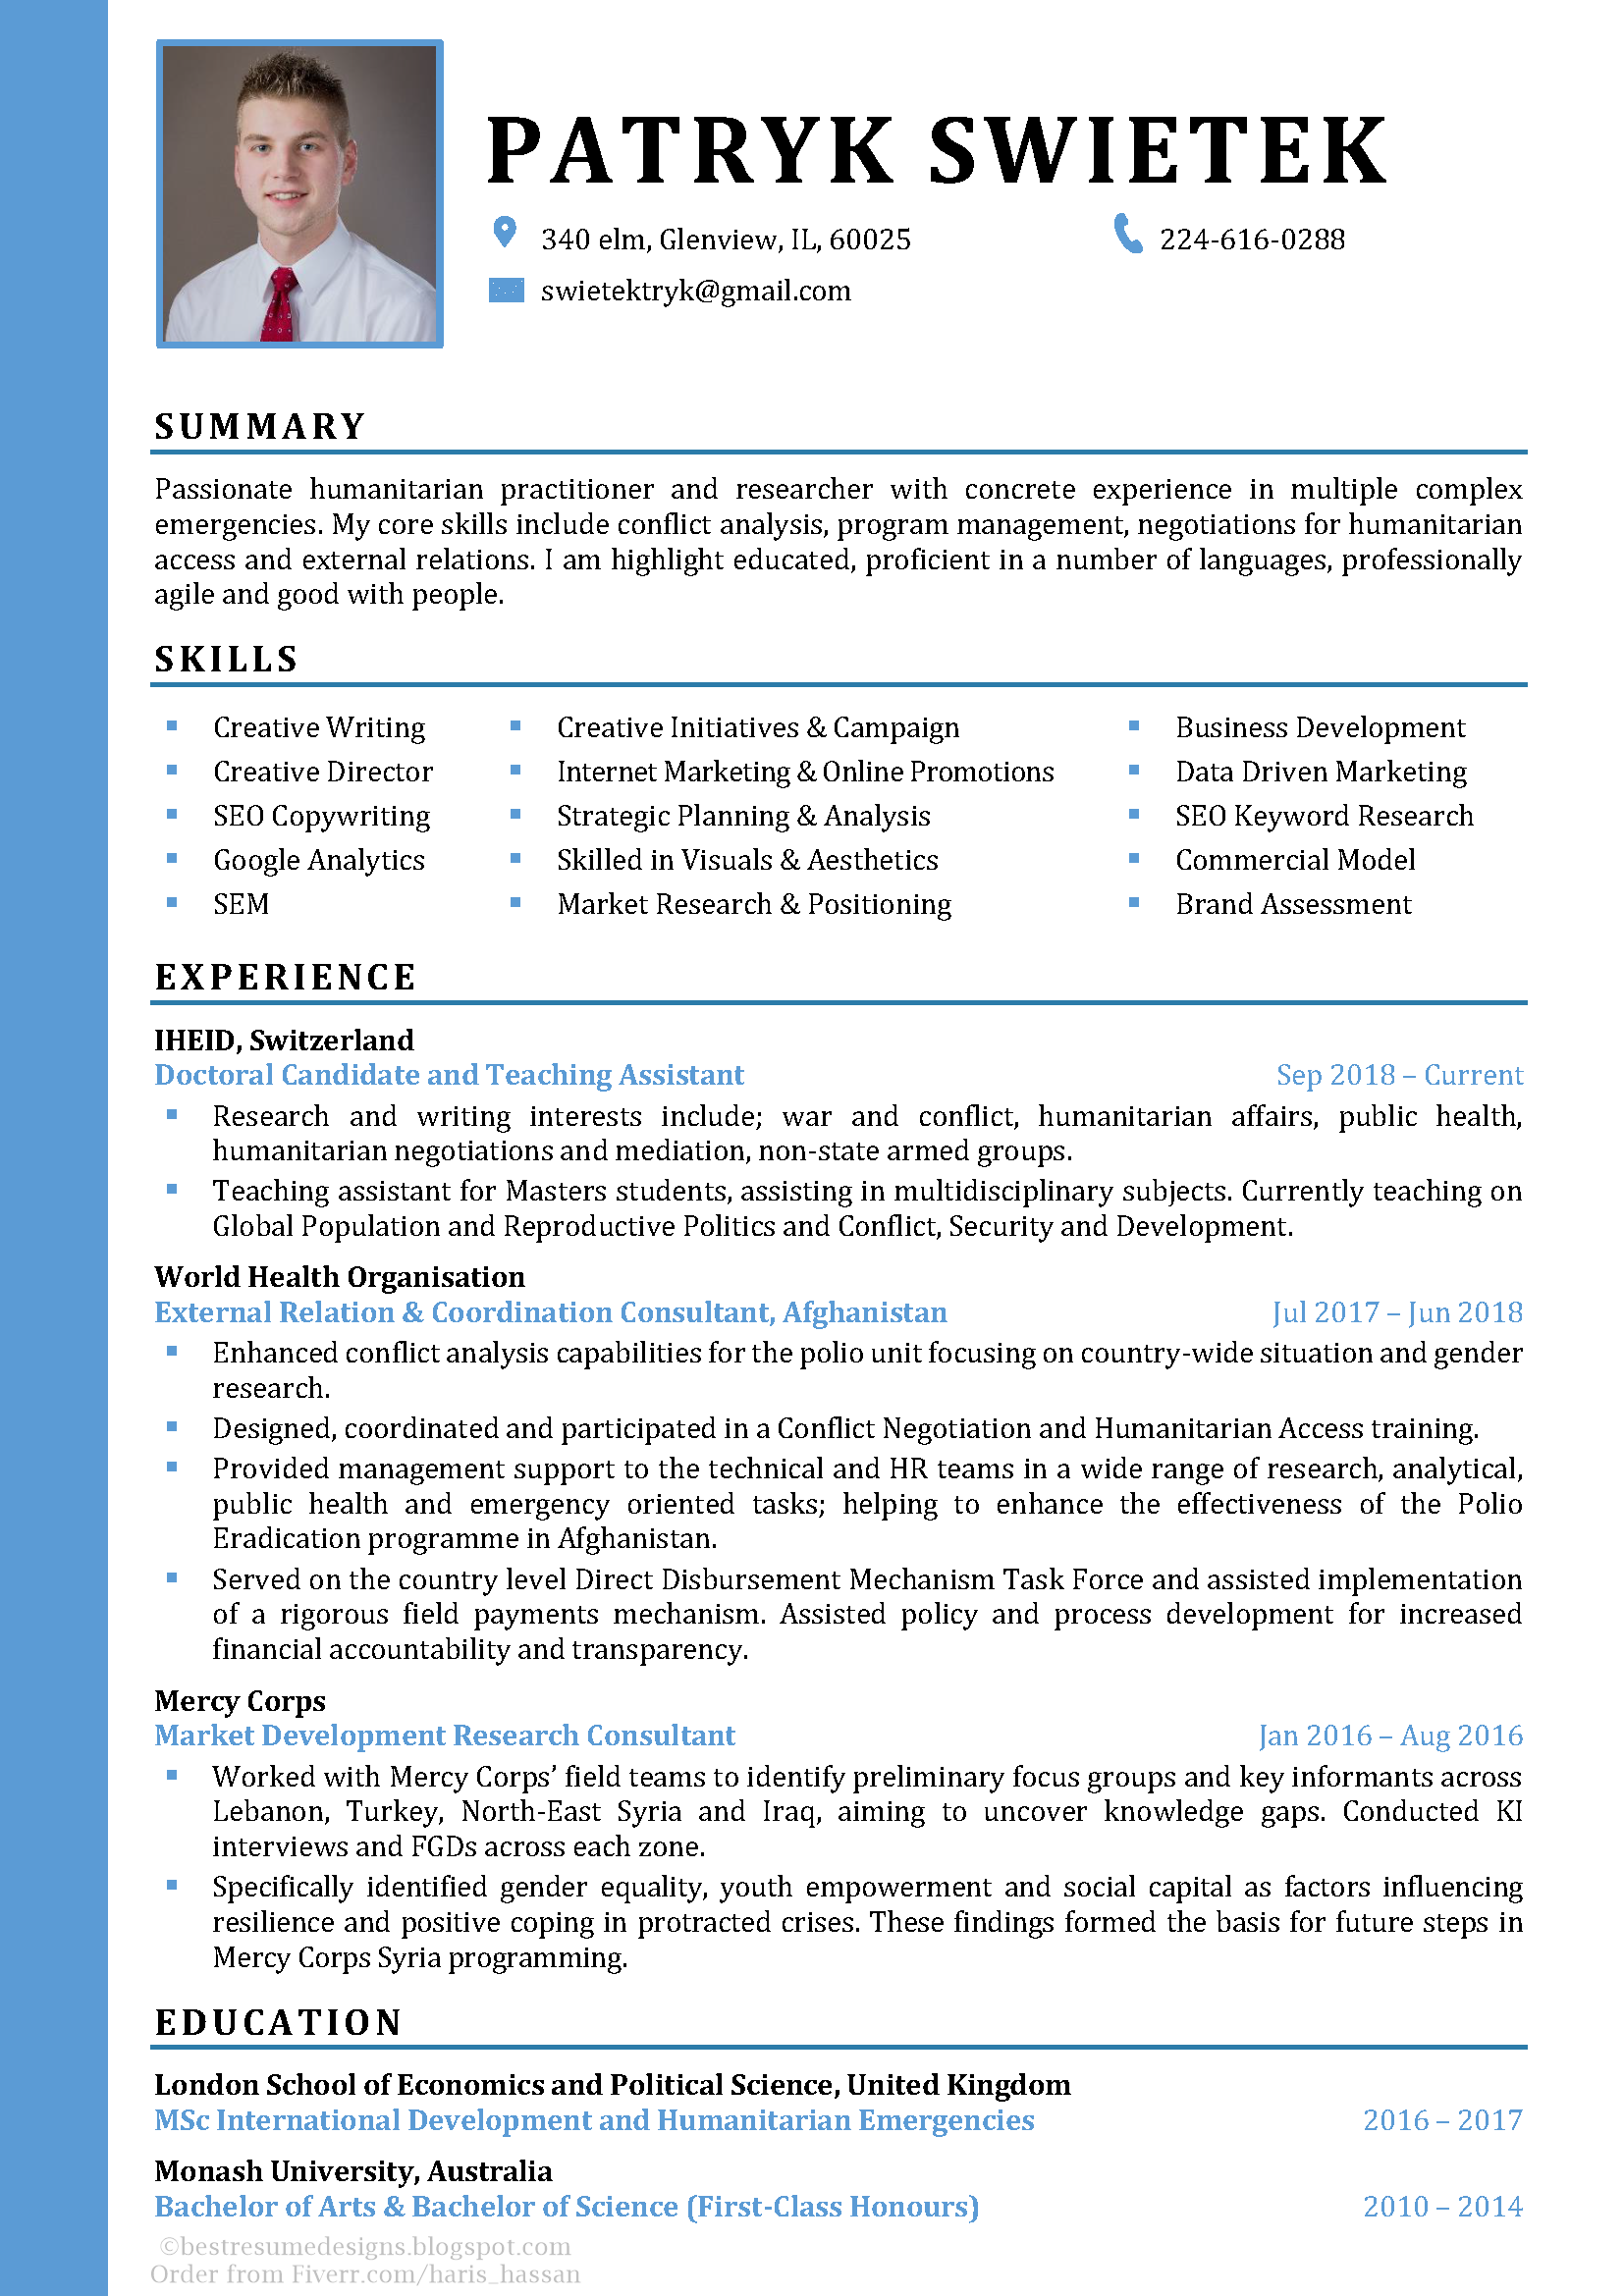 Cv Design No 5 Professional Resume Examples Resume Examples Career Motivation